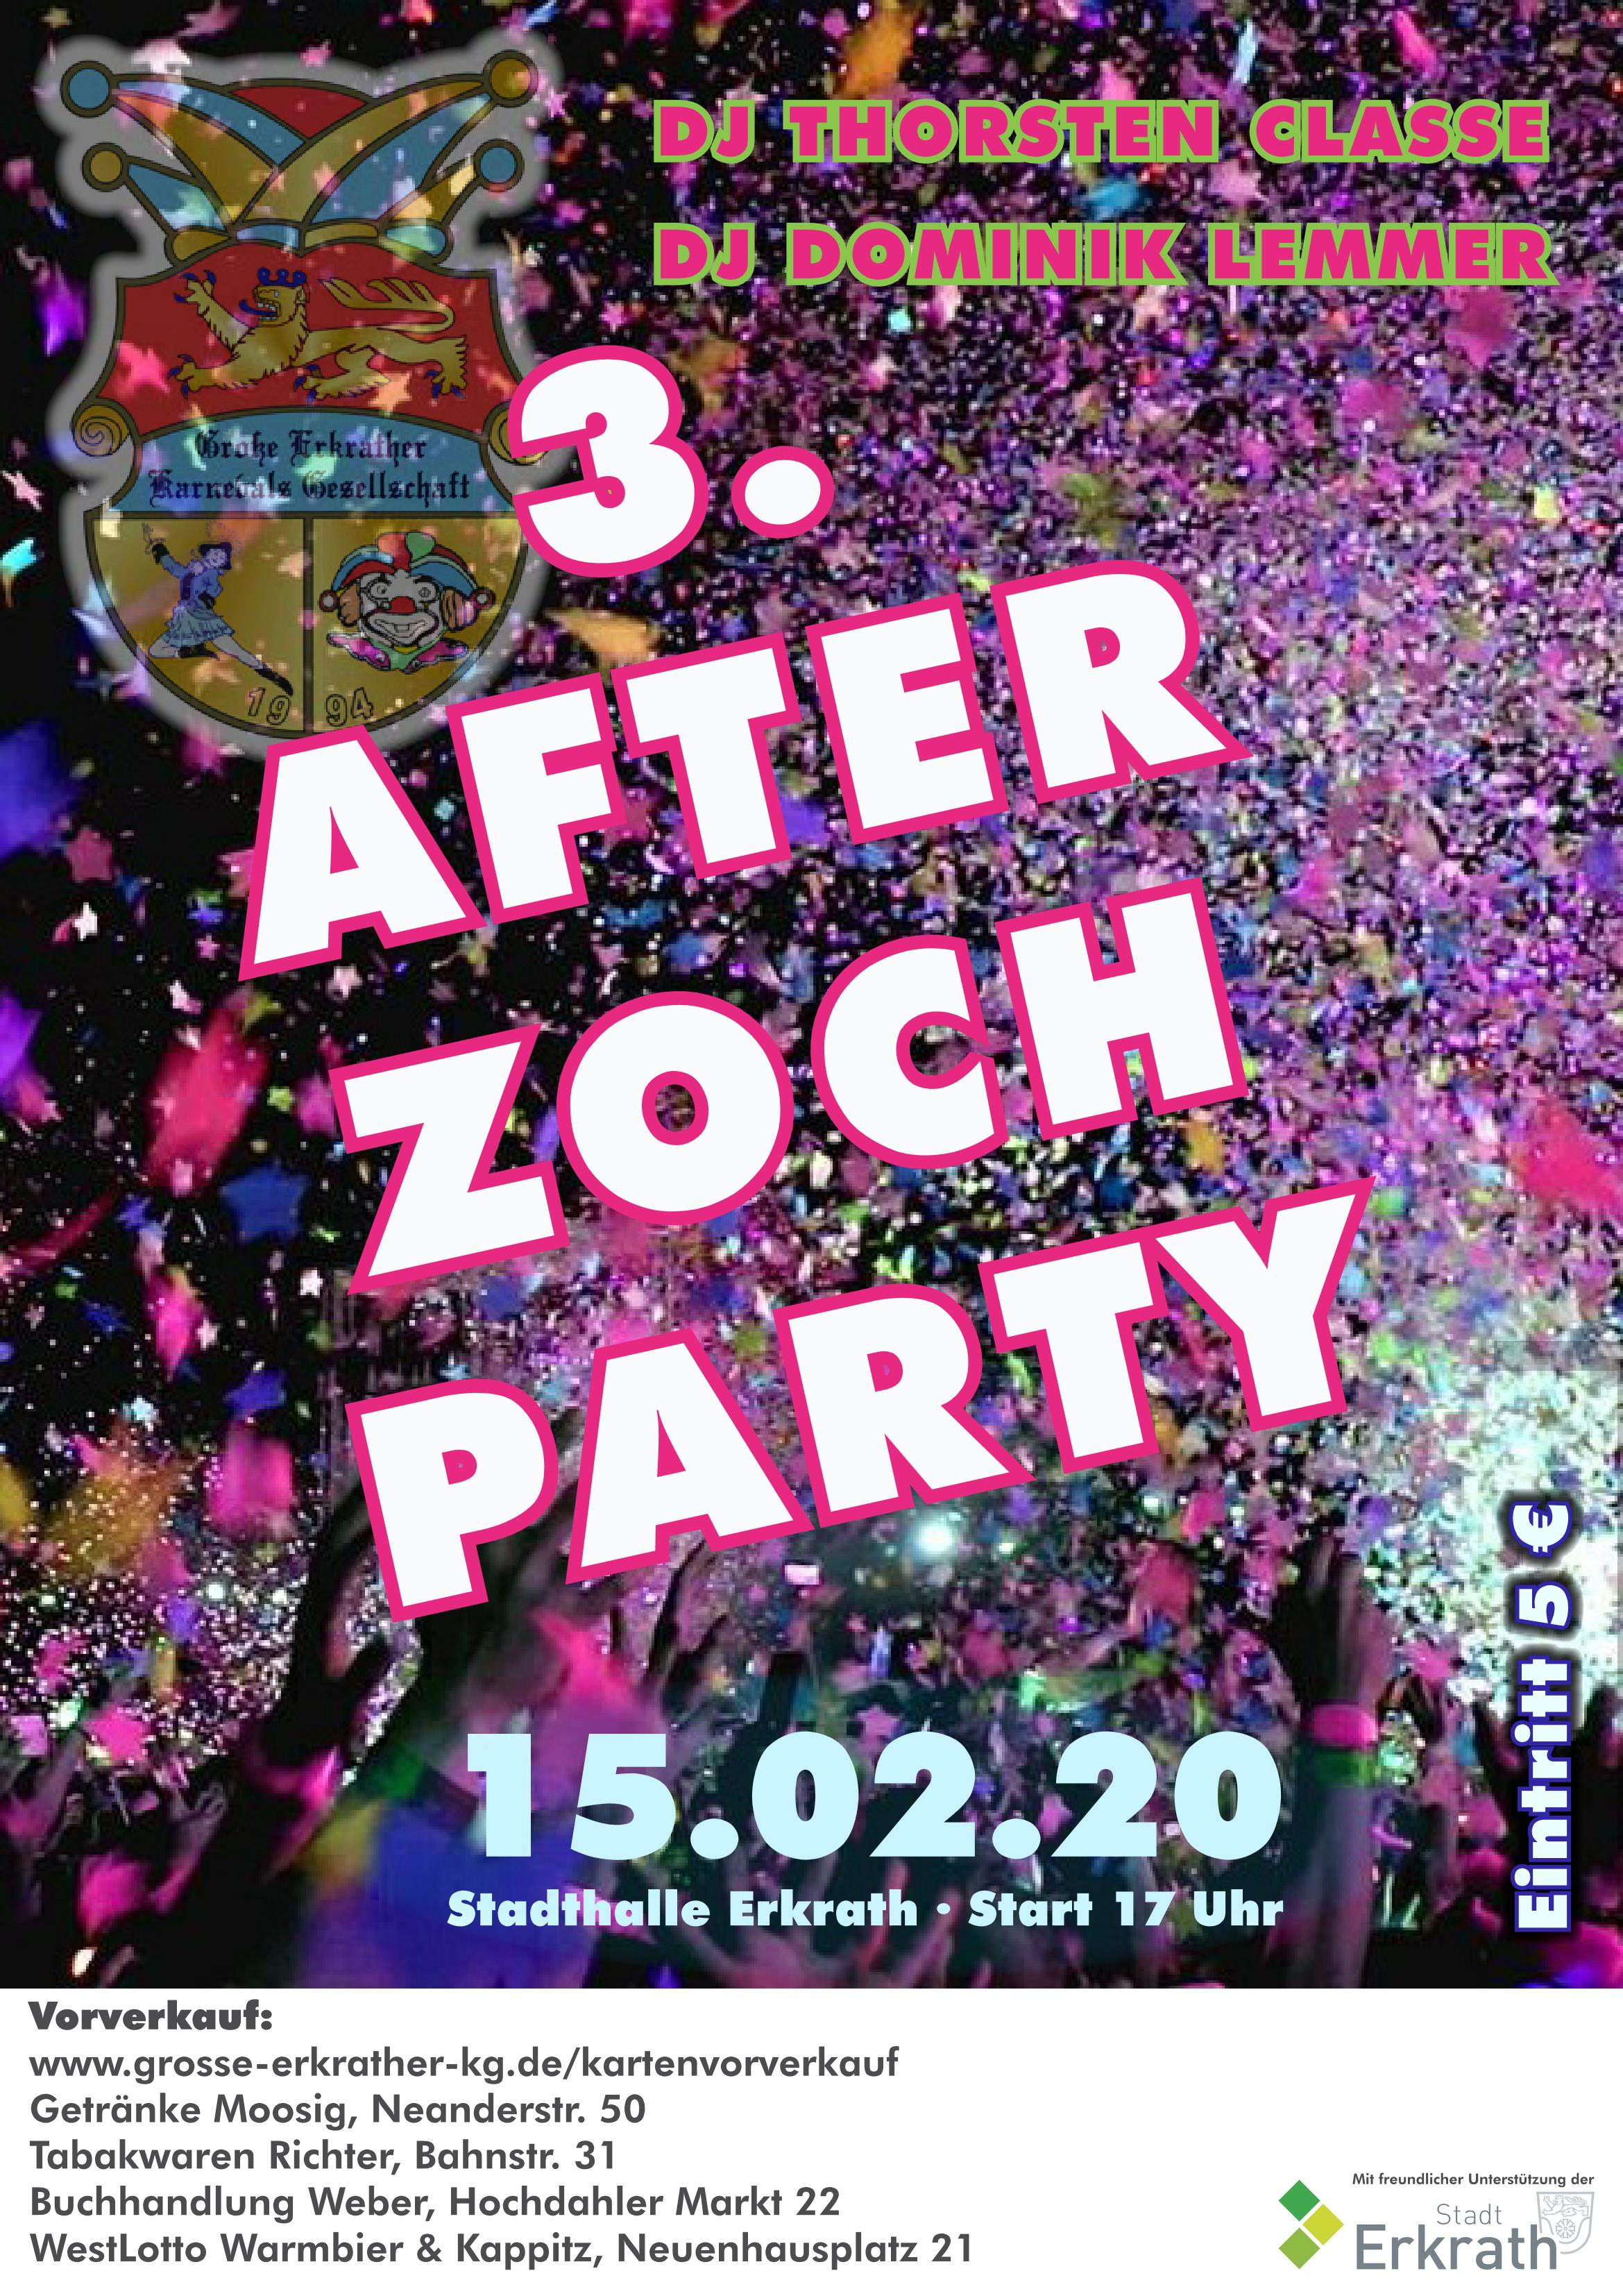 After Zoch Party 2020